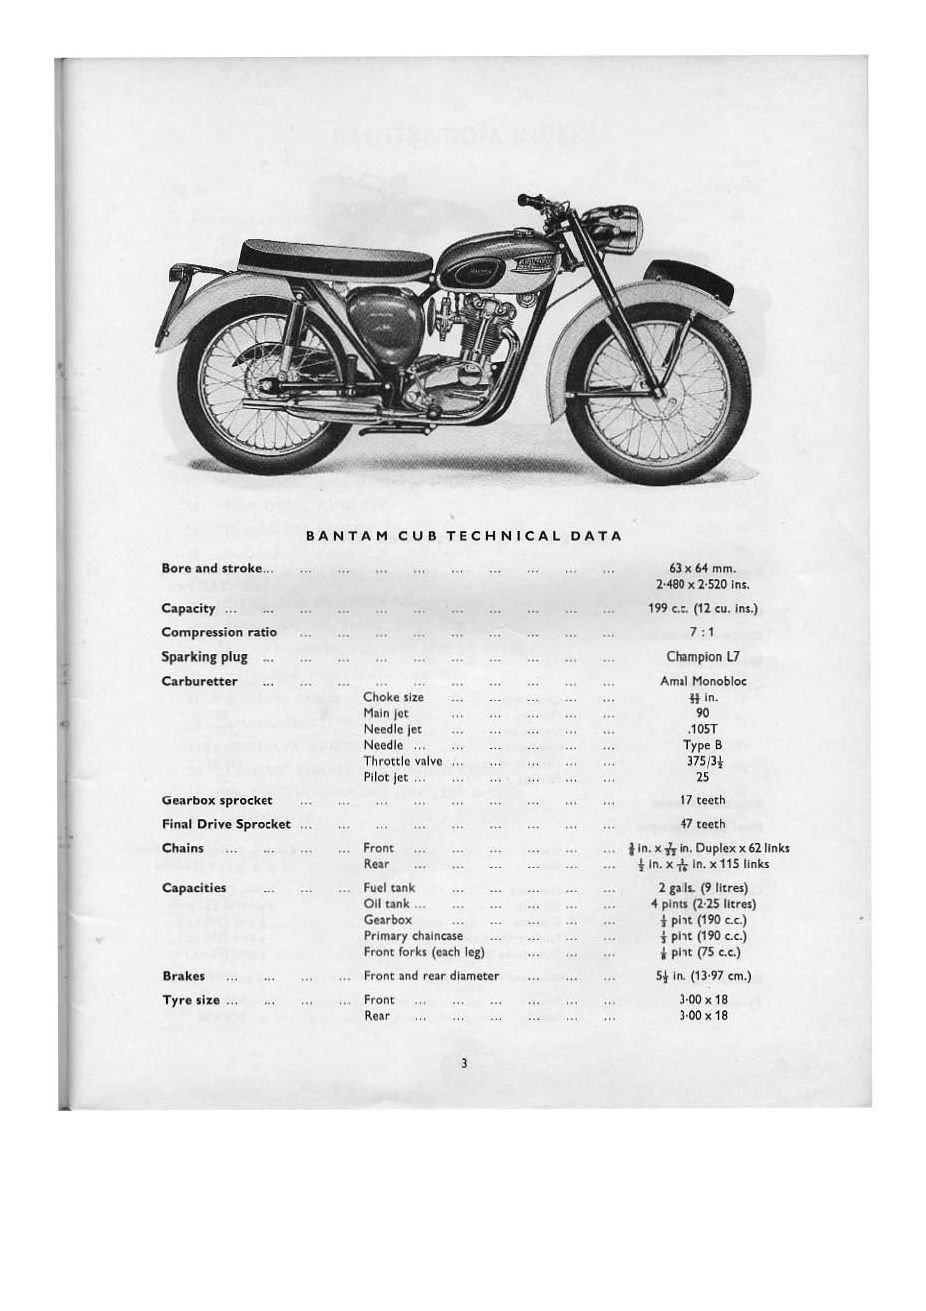 Here's the bike from the parts manual. apparently the use of the BSA Bantam  frame was a considerable upgrade from the original Triumph Tiger Cub frame.